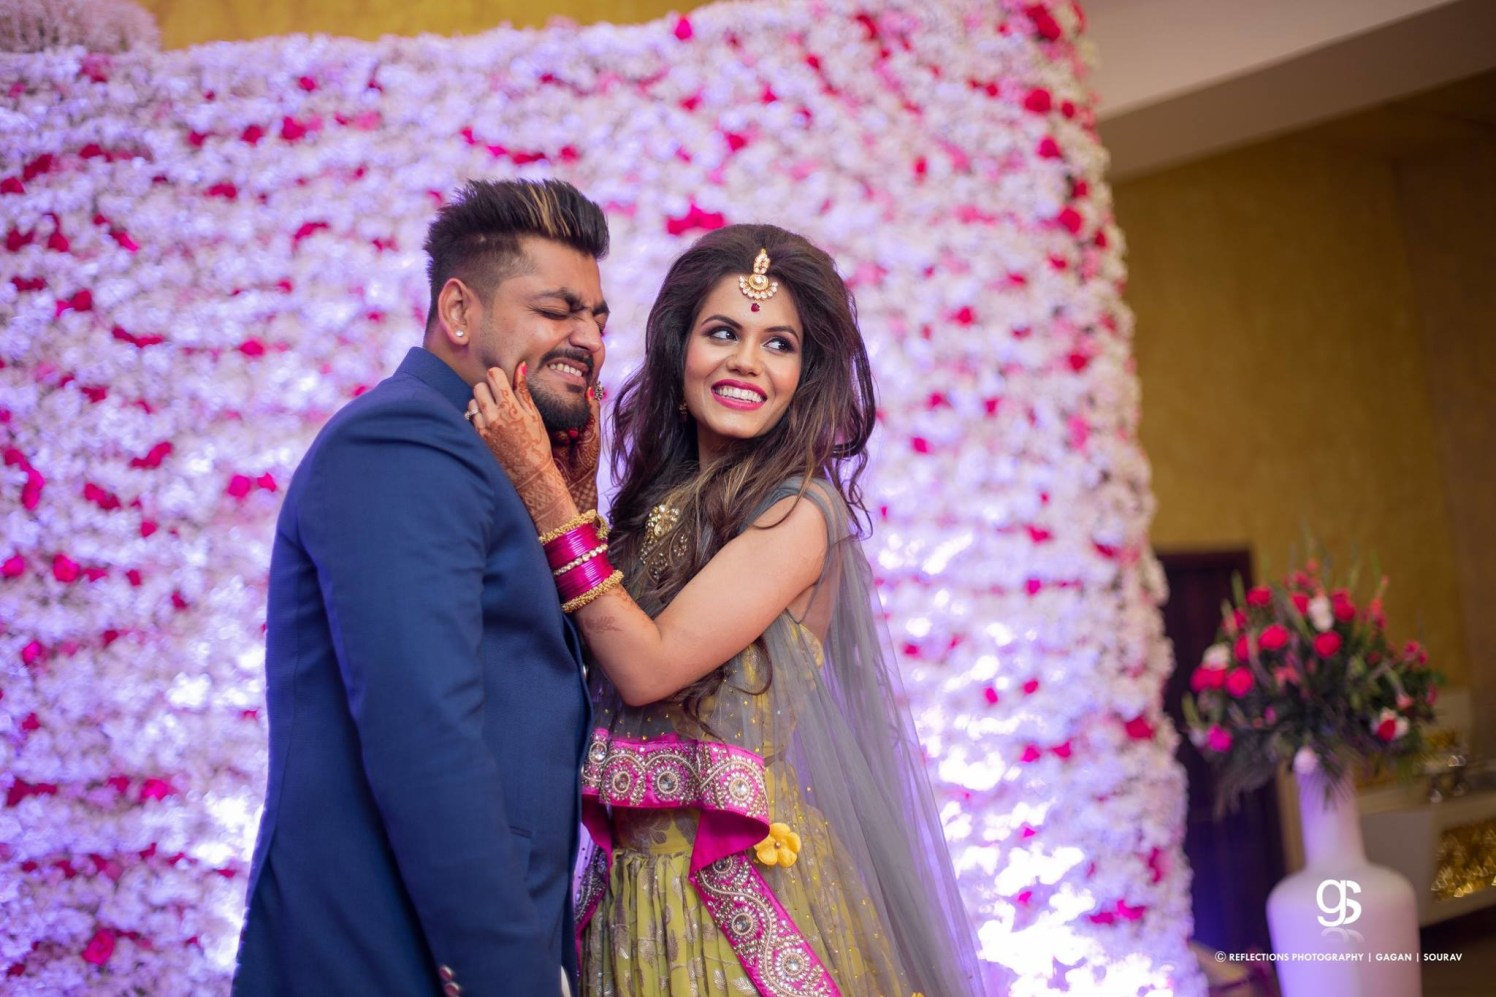 Smile, my love! by Reflections Photography Wedding-photography | Weddings Photos & Ideas